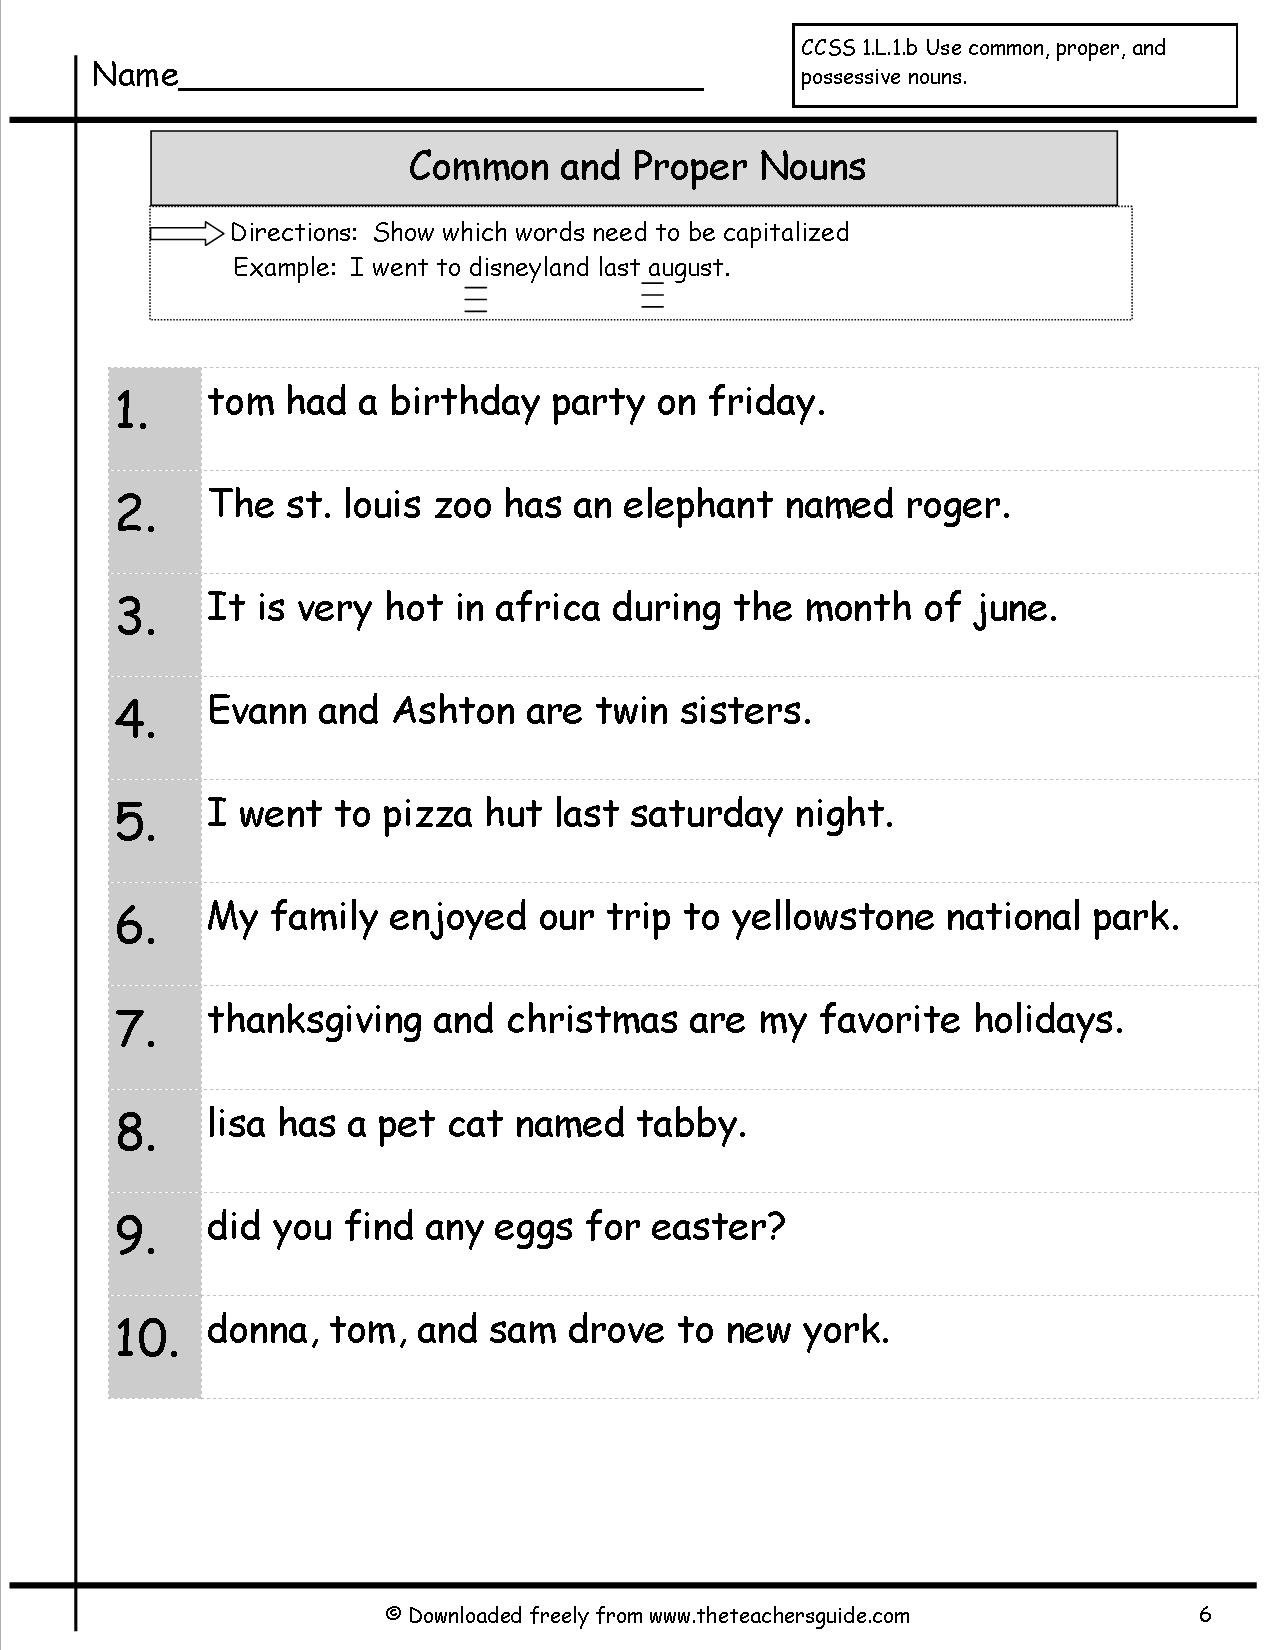 Nouns And Proper Nouns Worksheet The Best Worksheets Image